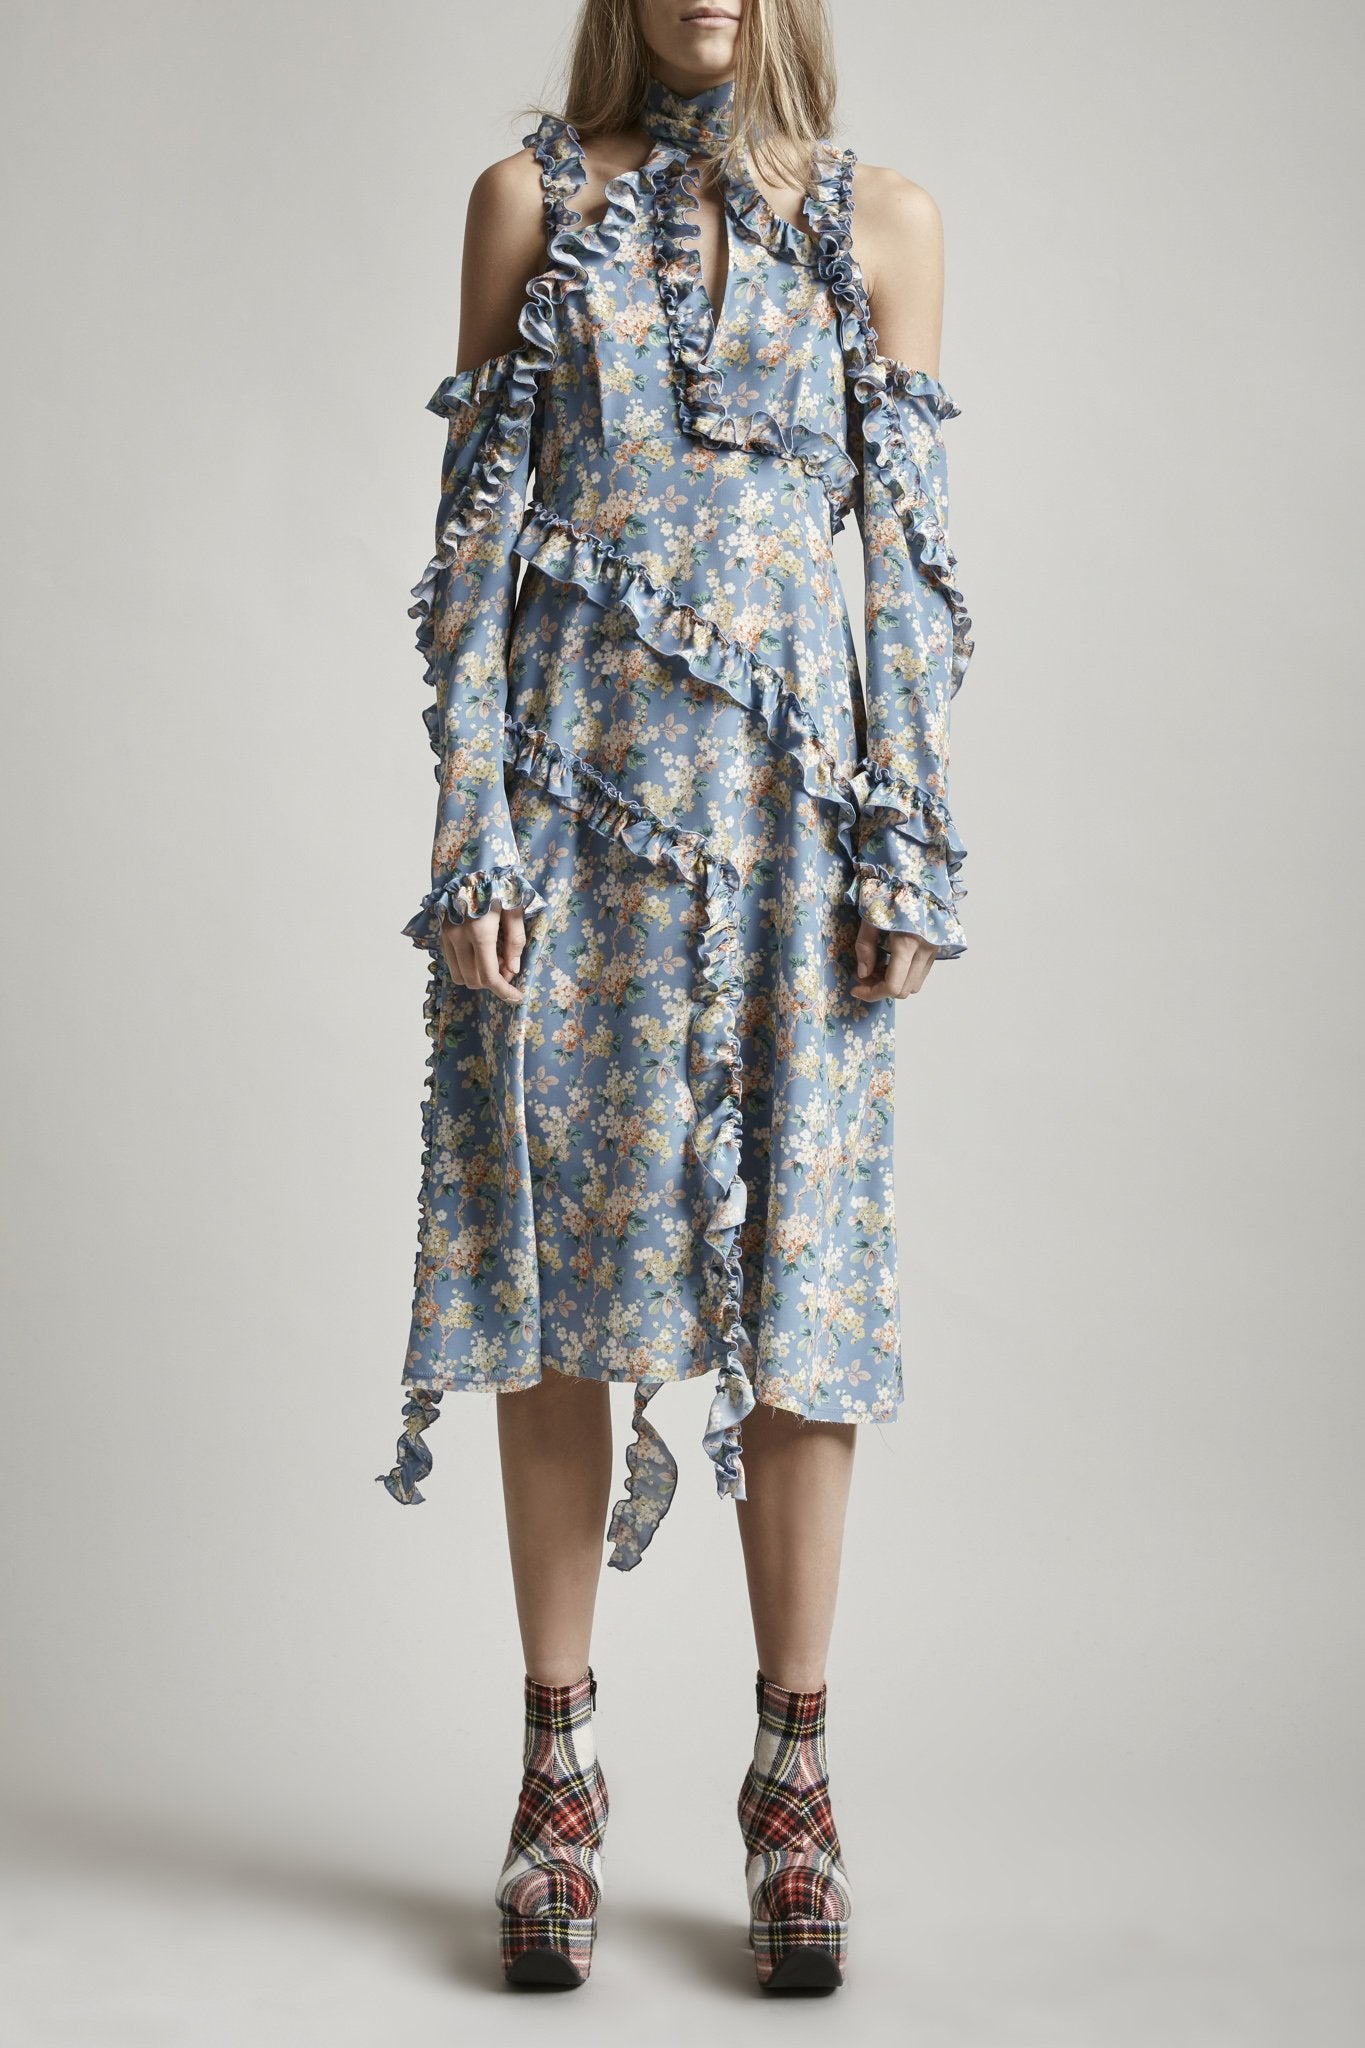 Ruffle Dress w/ Sleeve - Blue Floral